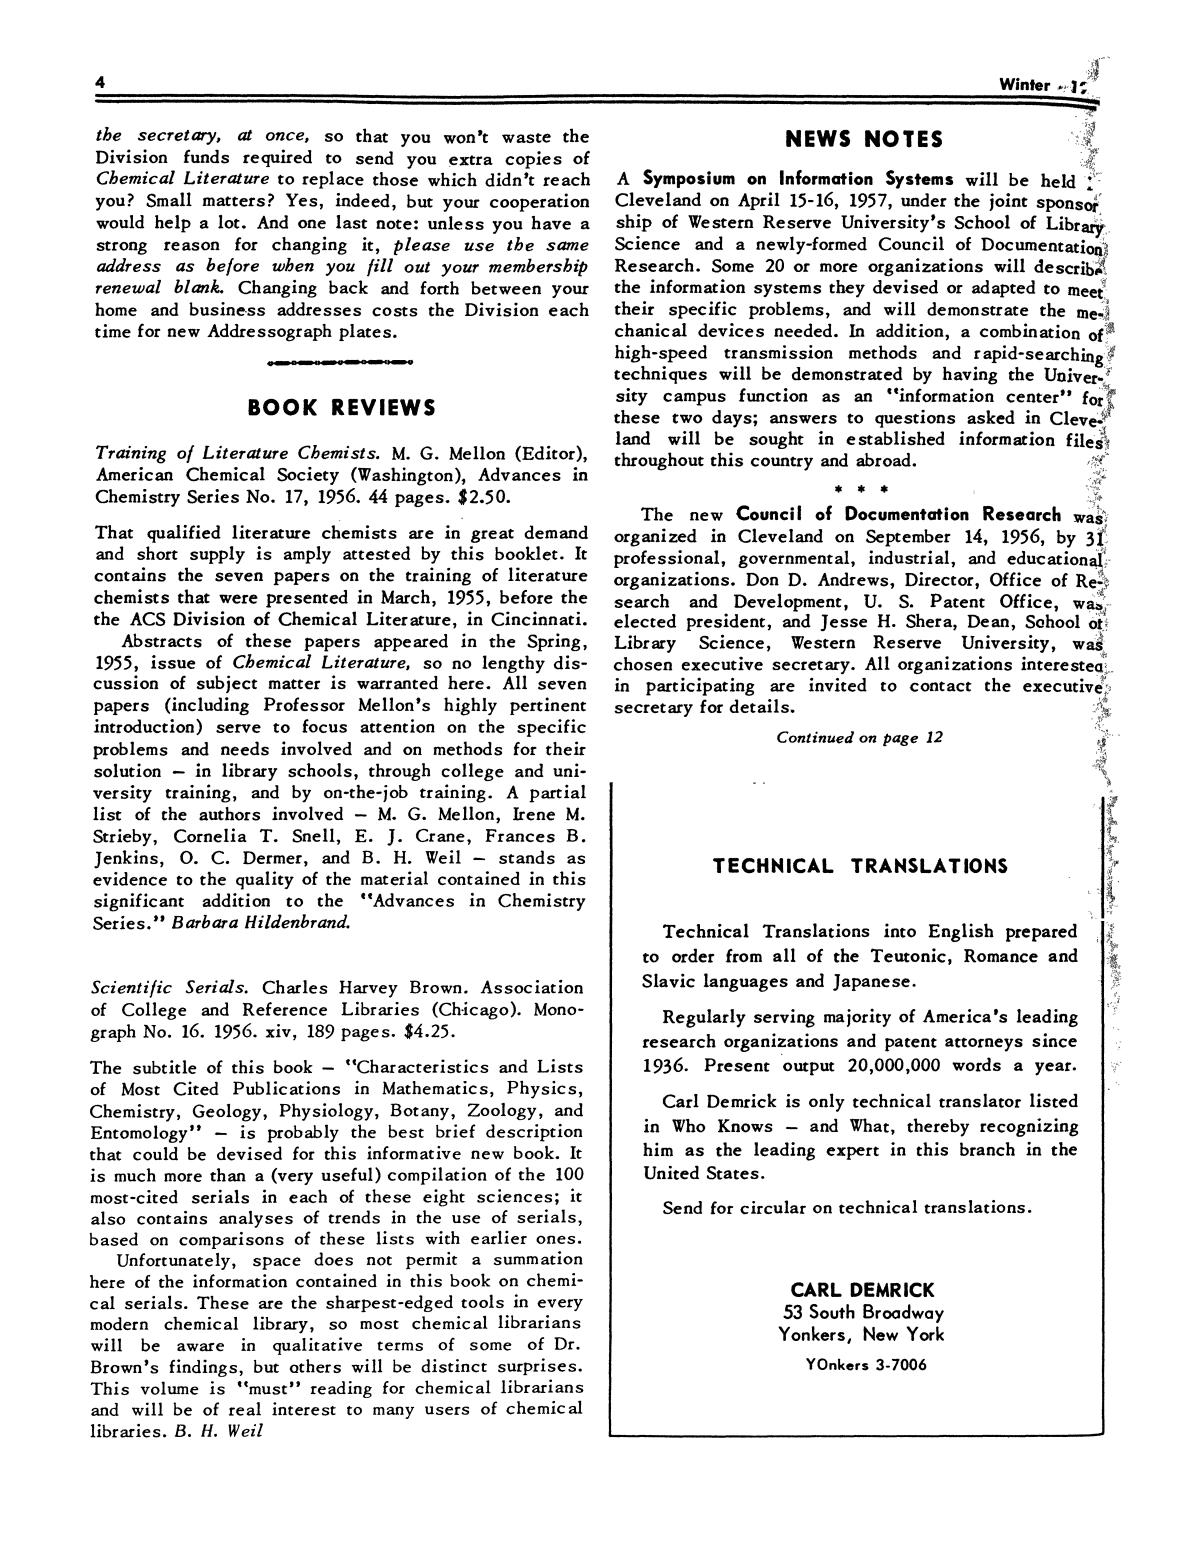 Chemical Literature, Volume 8, Number 4, Winter 1956                                                                                                      4